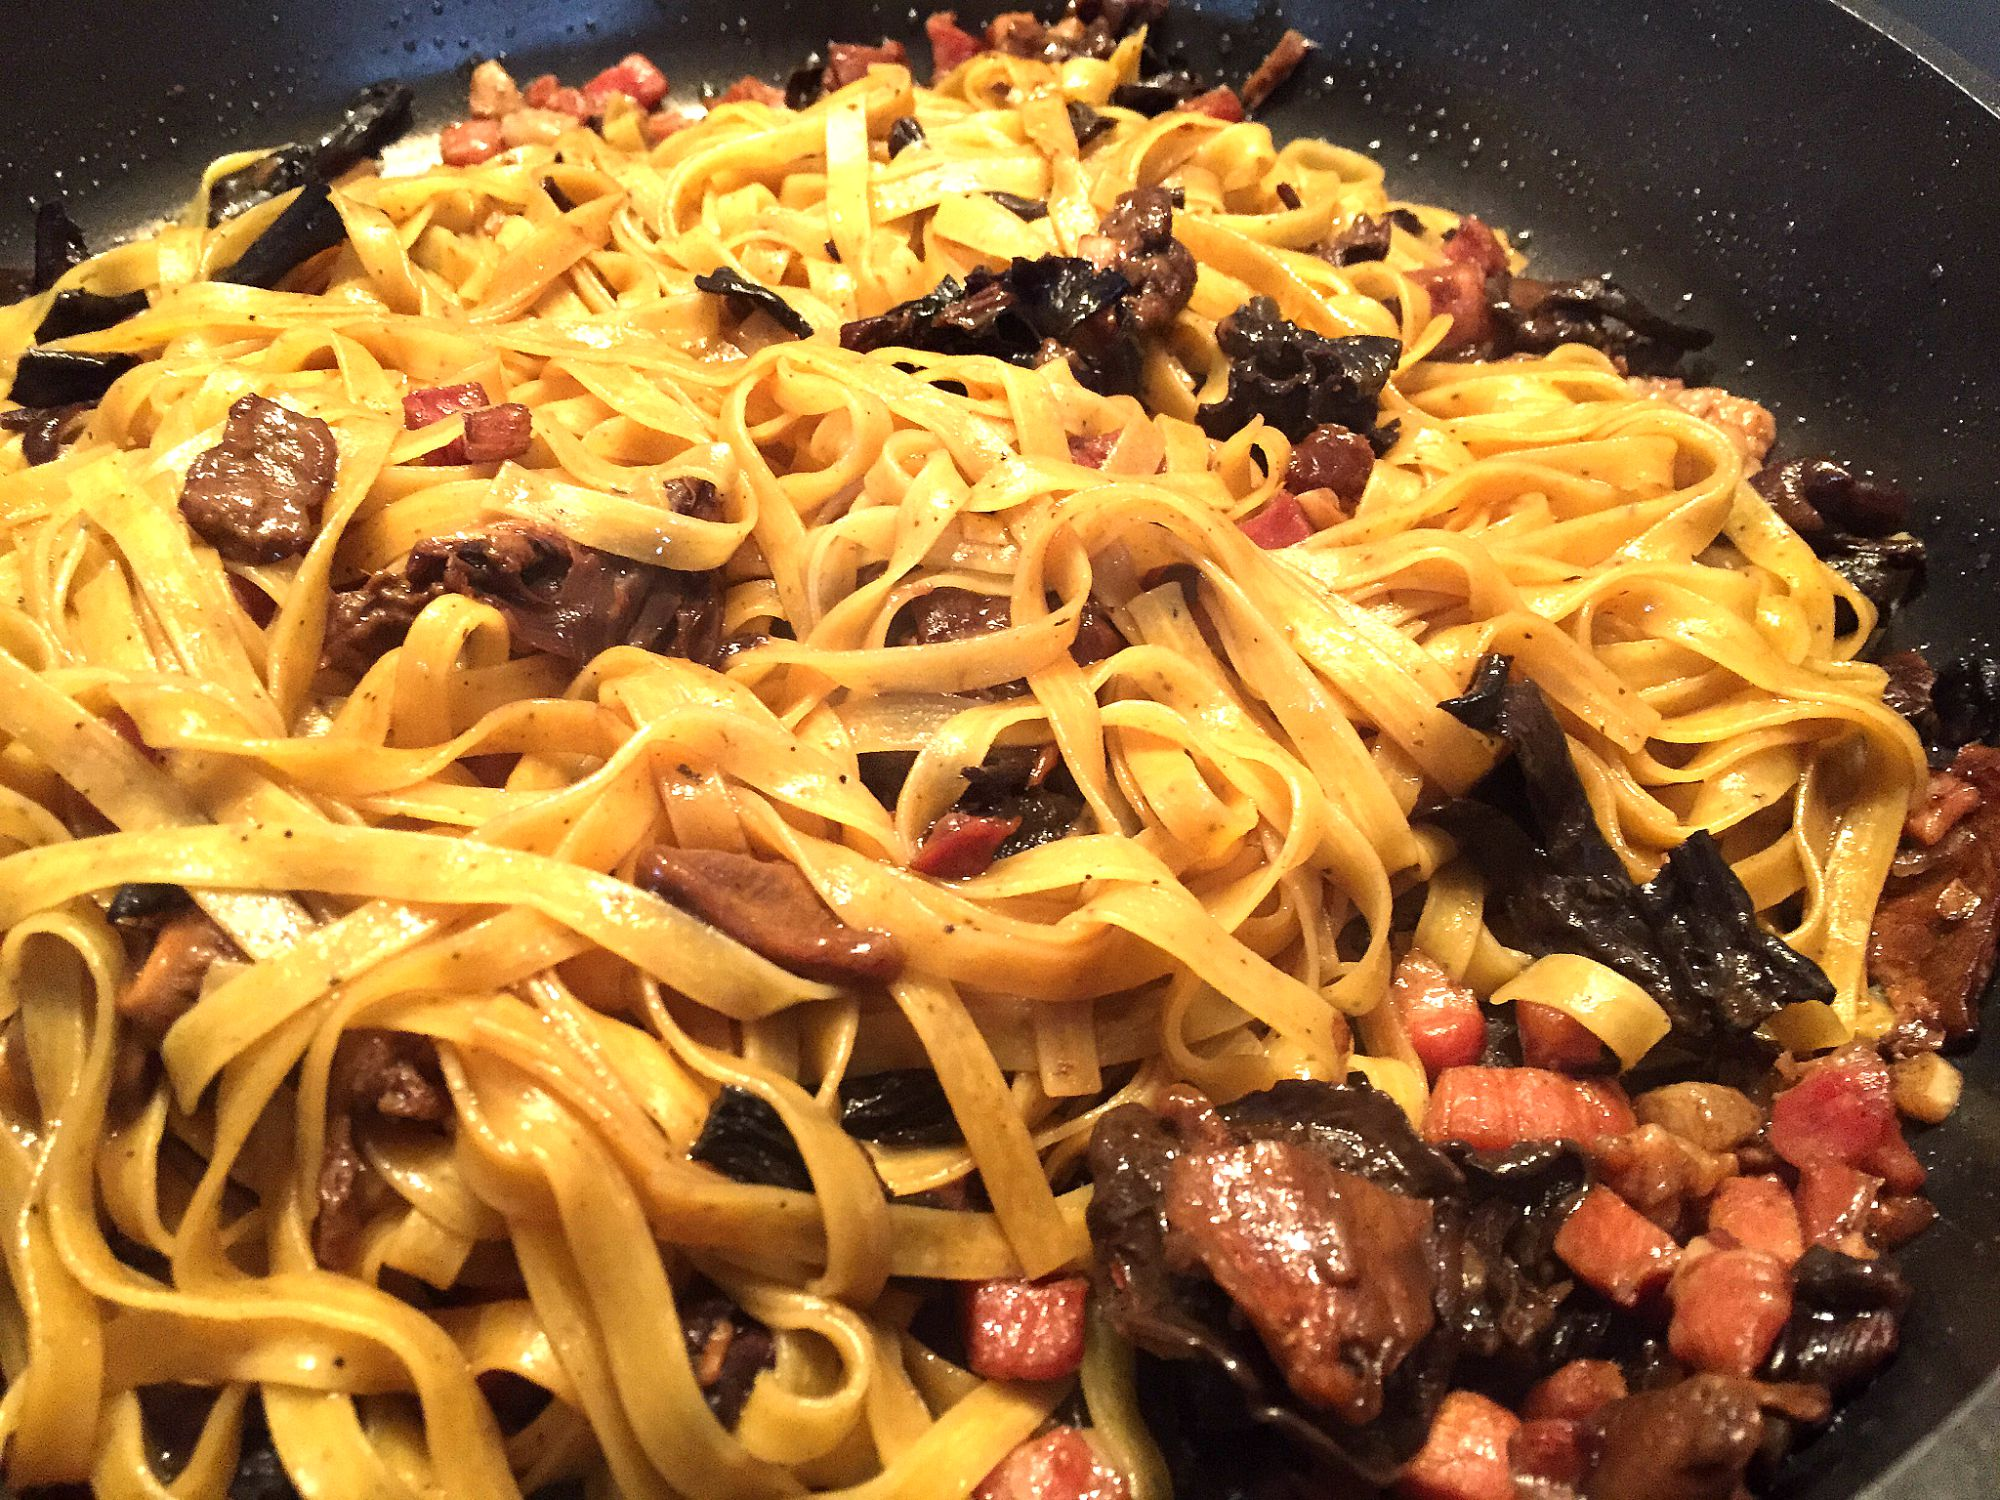 ... pancetta – Truffle flavoured fettuccine with mushrooms and pancetta